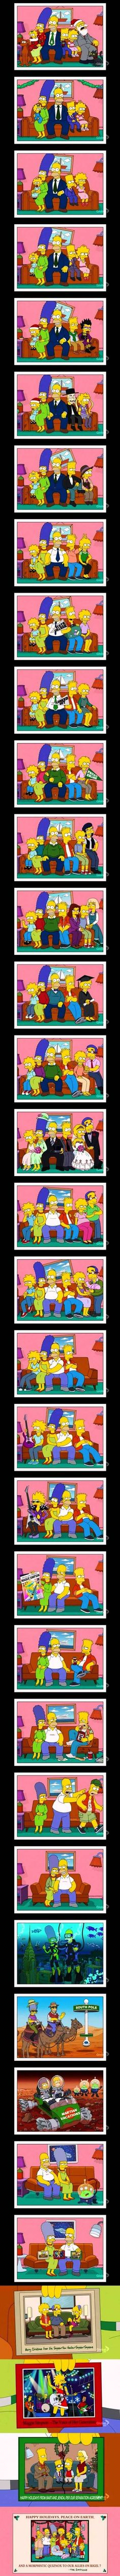 The Simpsons Timeline